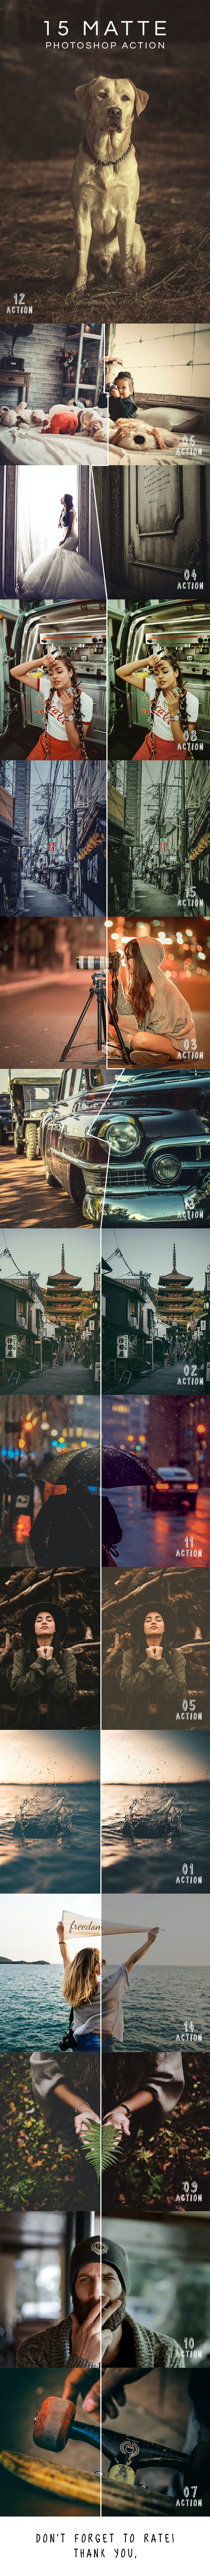 15 Matte Effects Photoshop Actions - Photo Effects Actions